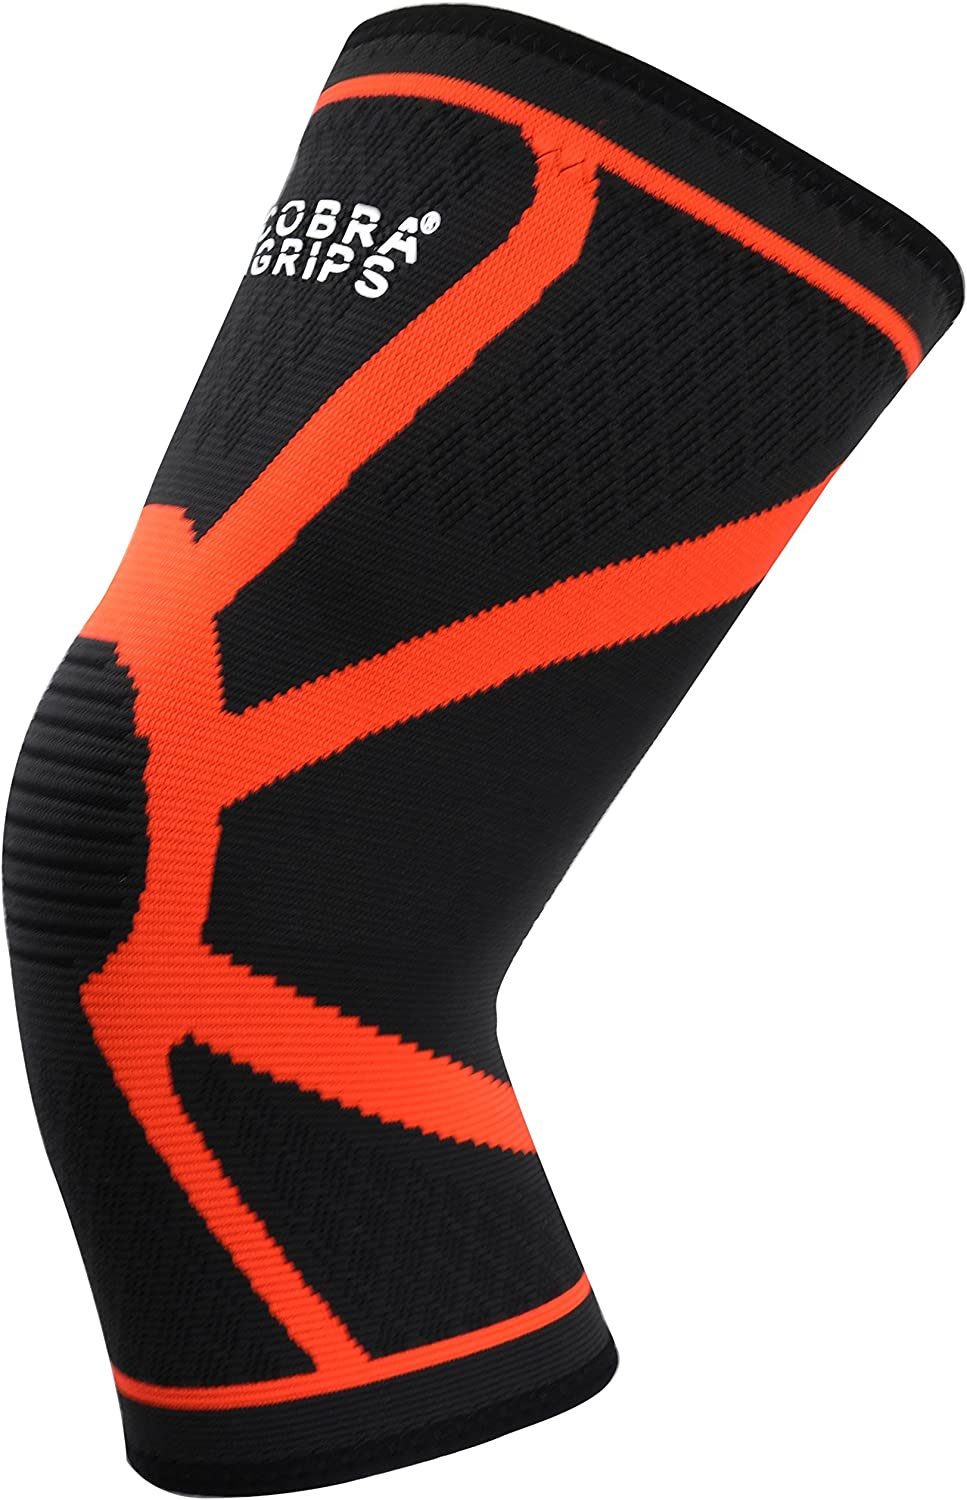 /& Compression for Weightlifting Powerlifting /& Crossfit Squats Both Women /& Men Knee Compression Sleeve Support 1 Pair